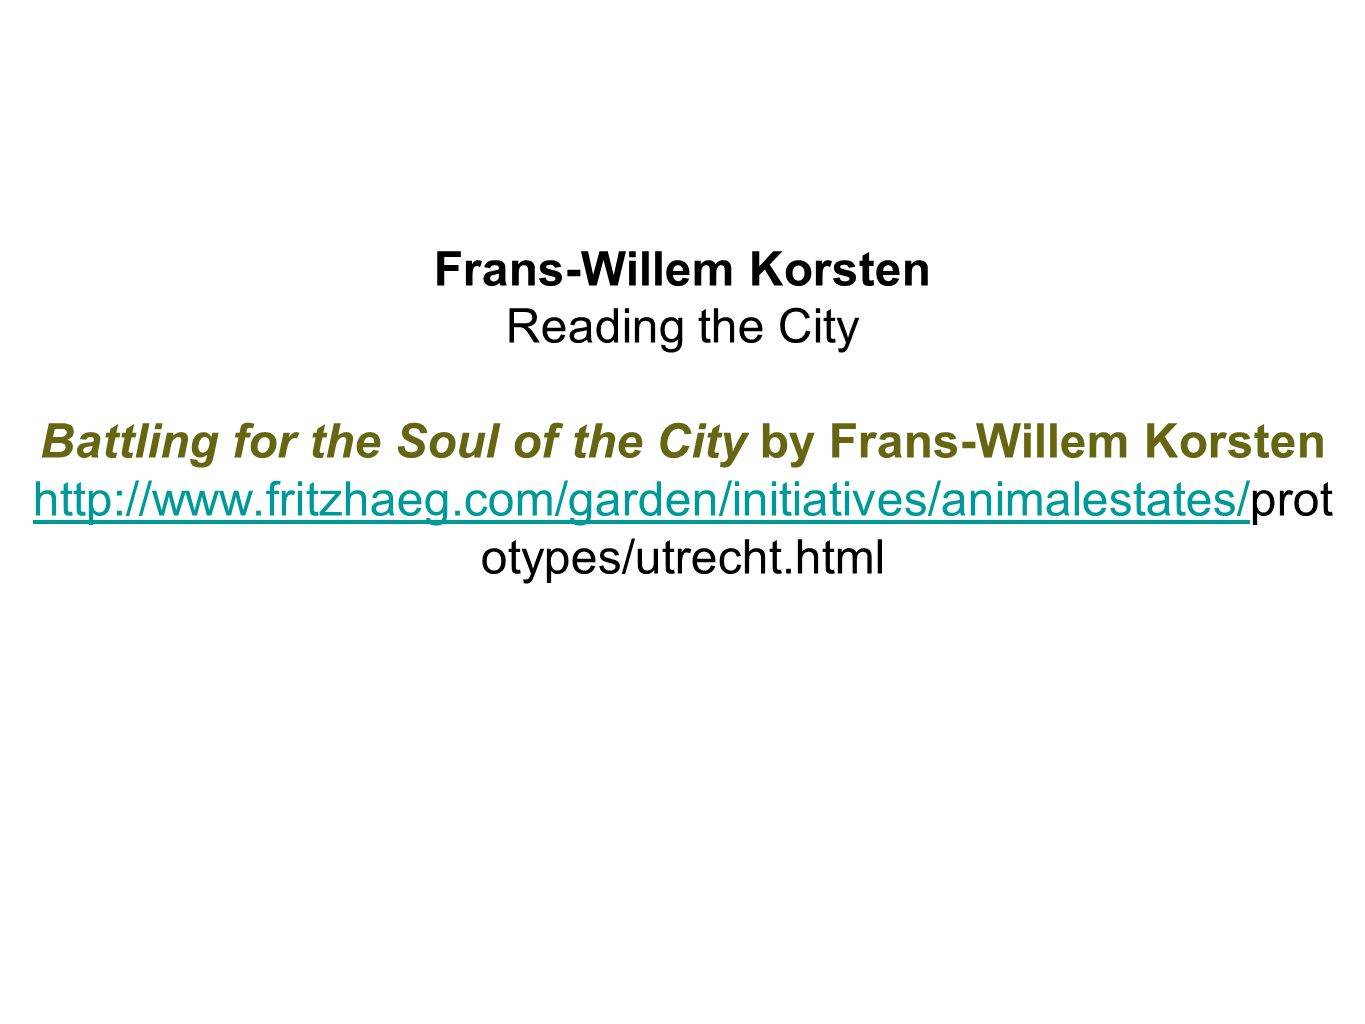 Frans-Willem Korsten Reading the City Battling for the Soul of the City by Frans-Willem Korsten http://www.fritzhaeg.com/garden/initiatives/animalesta